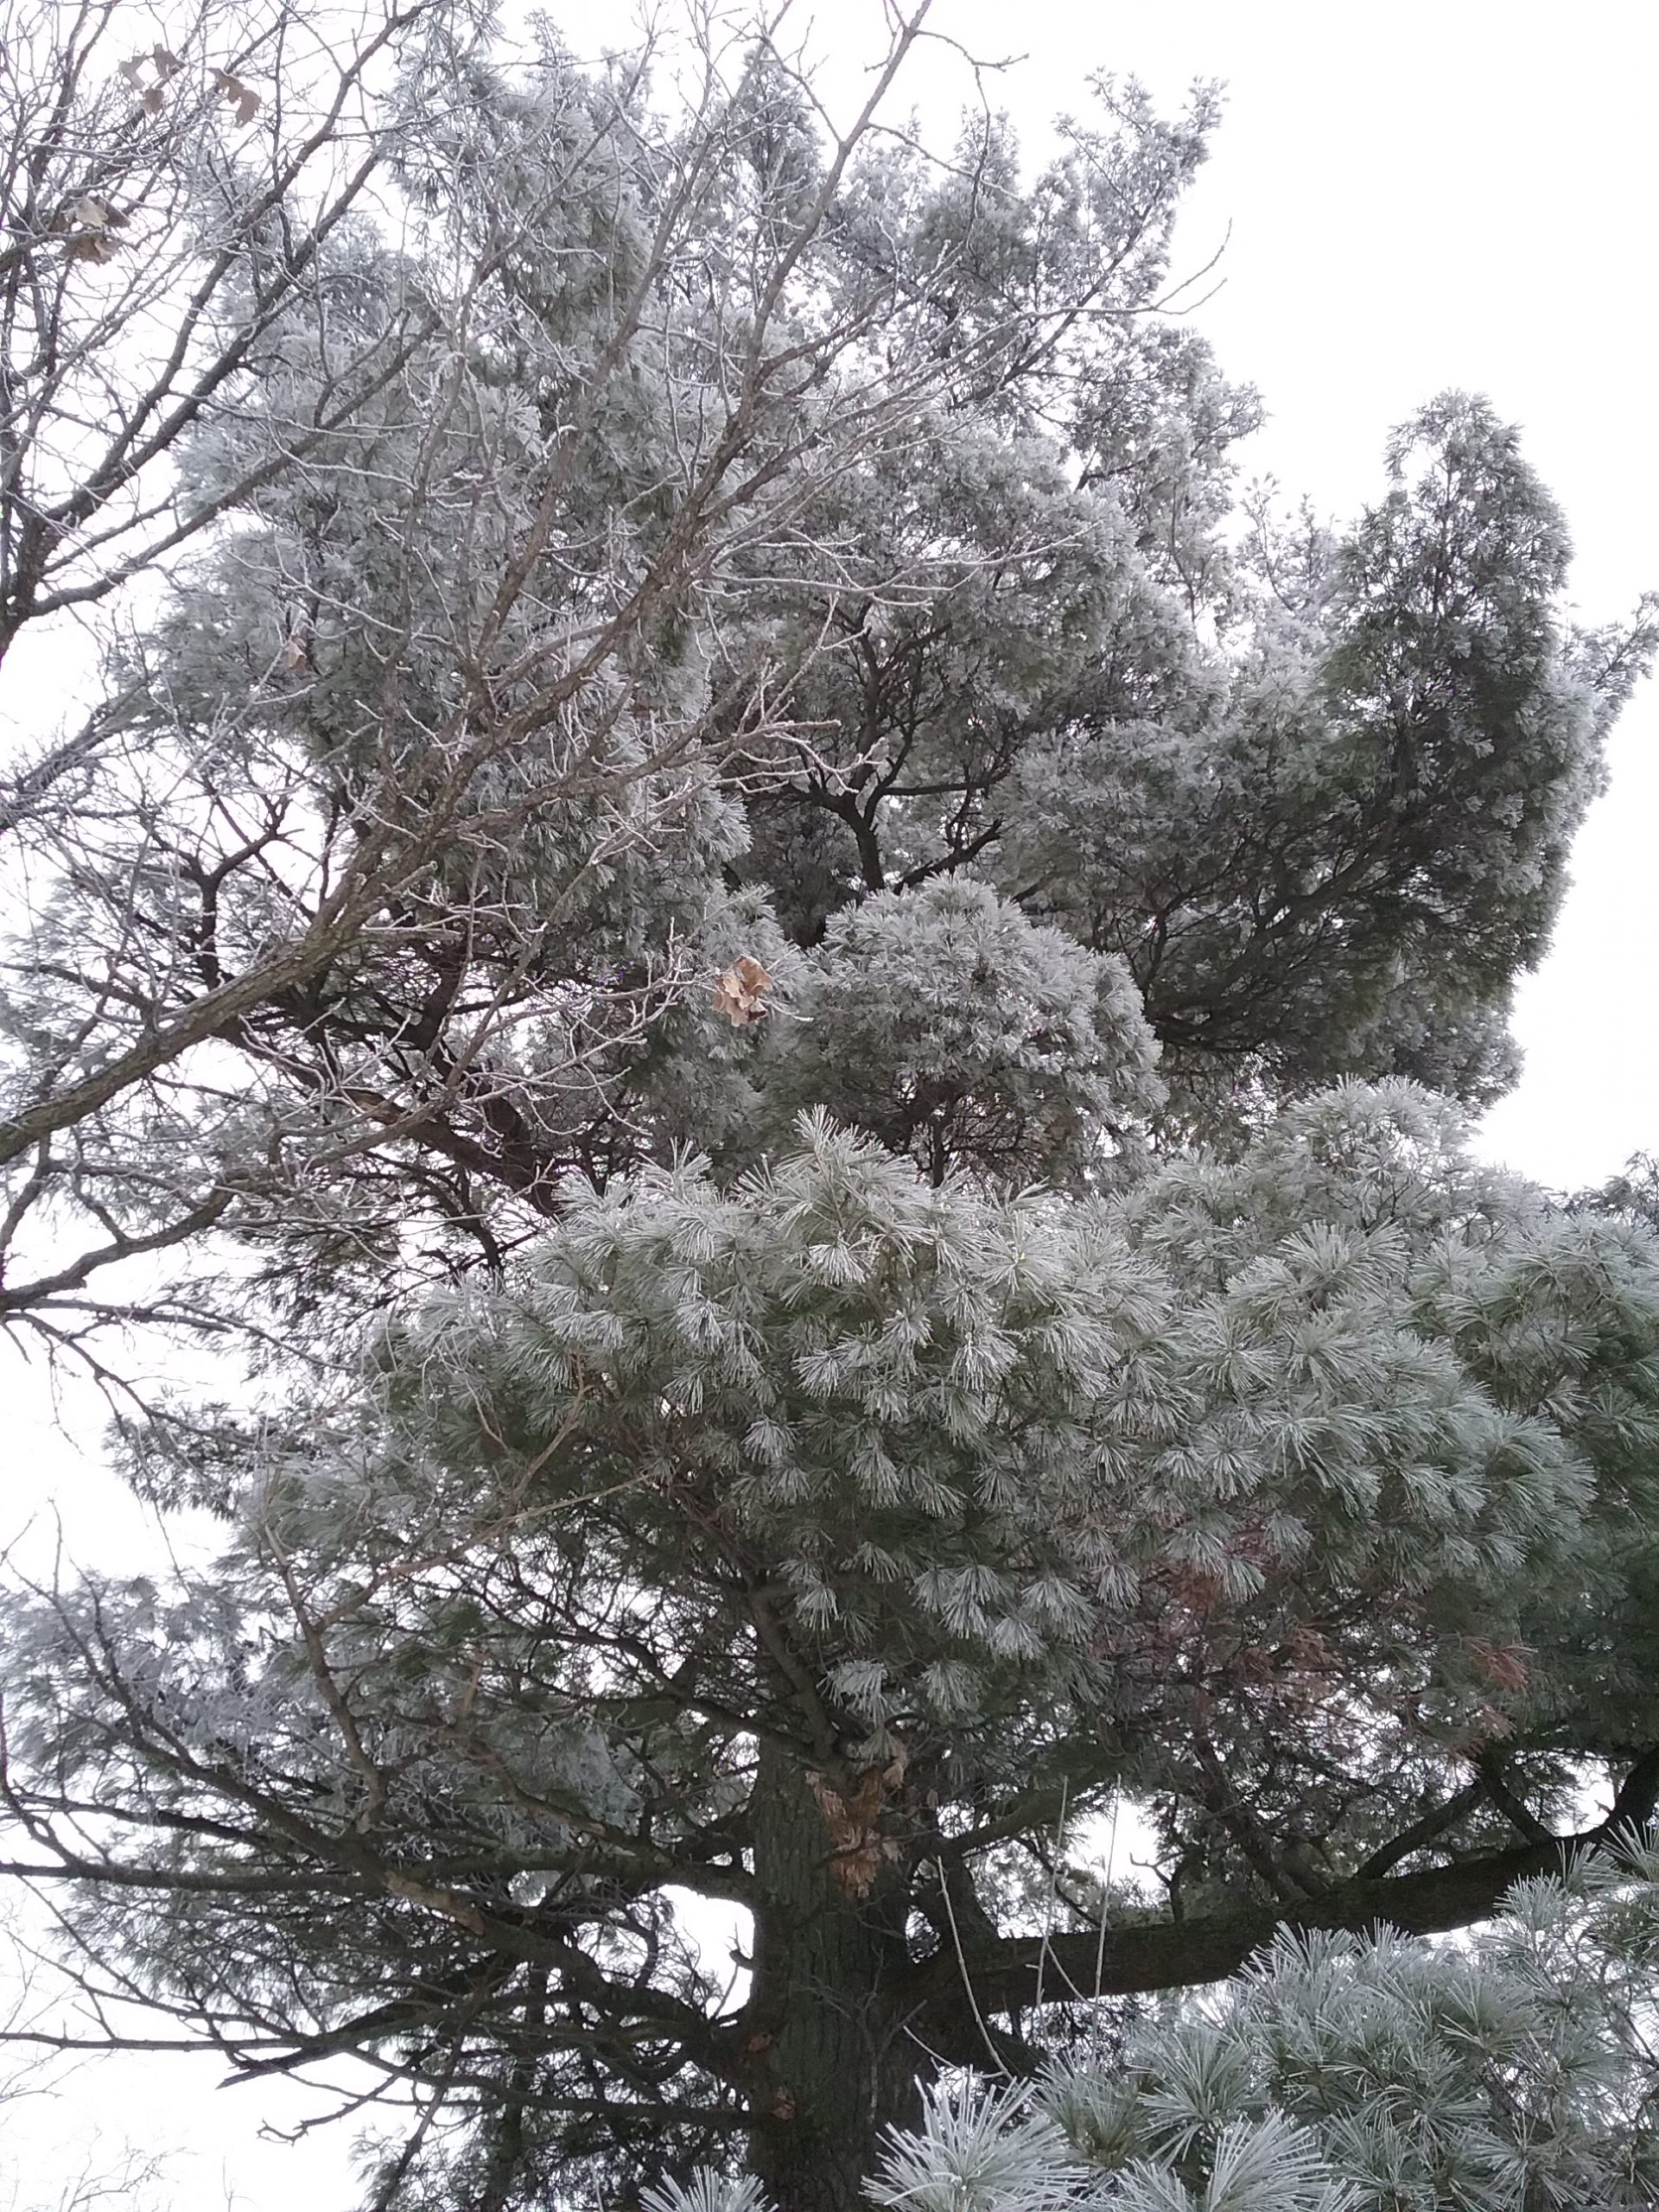 Frosty big pine at the Weyerhaeuser Museum, Little Falls, MN, 2020.